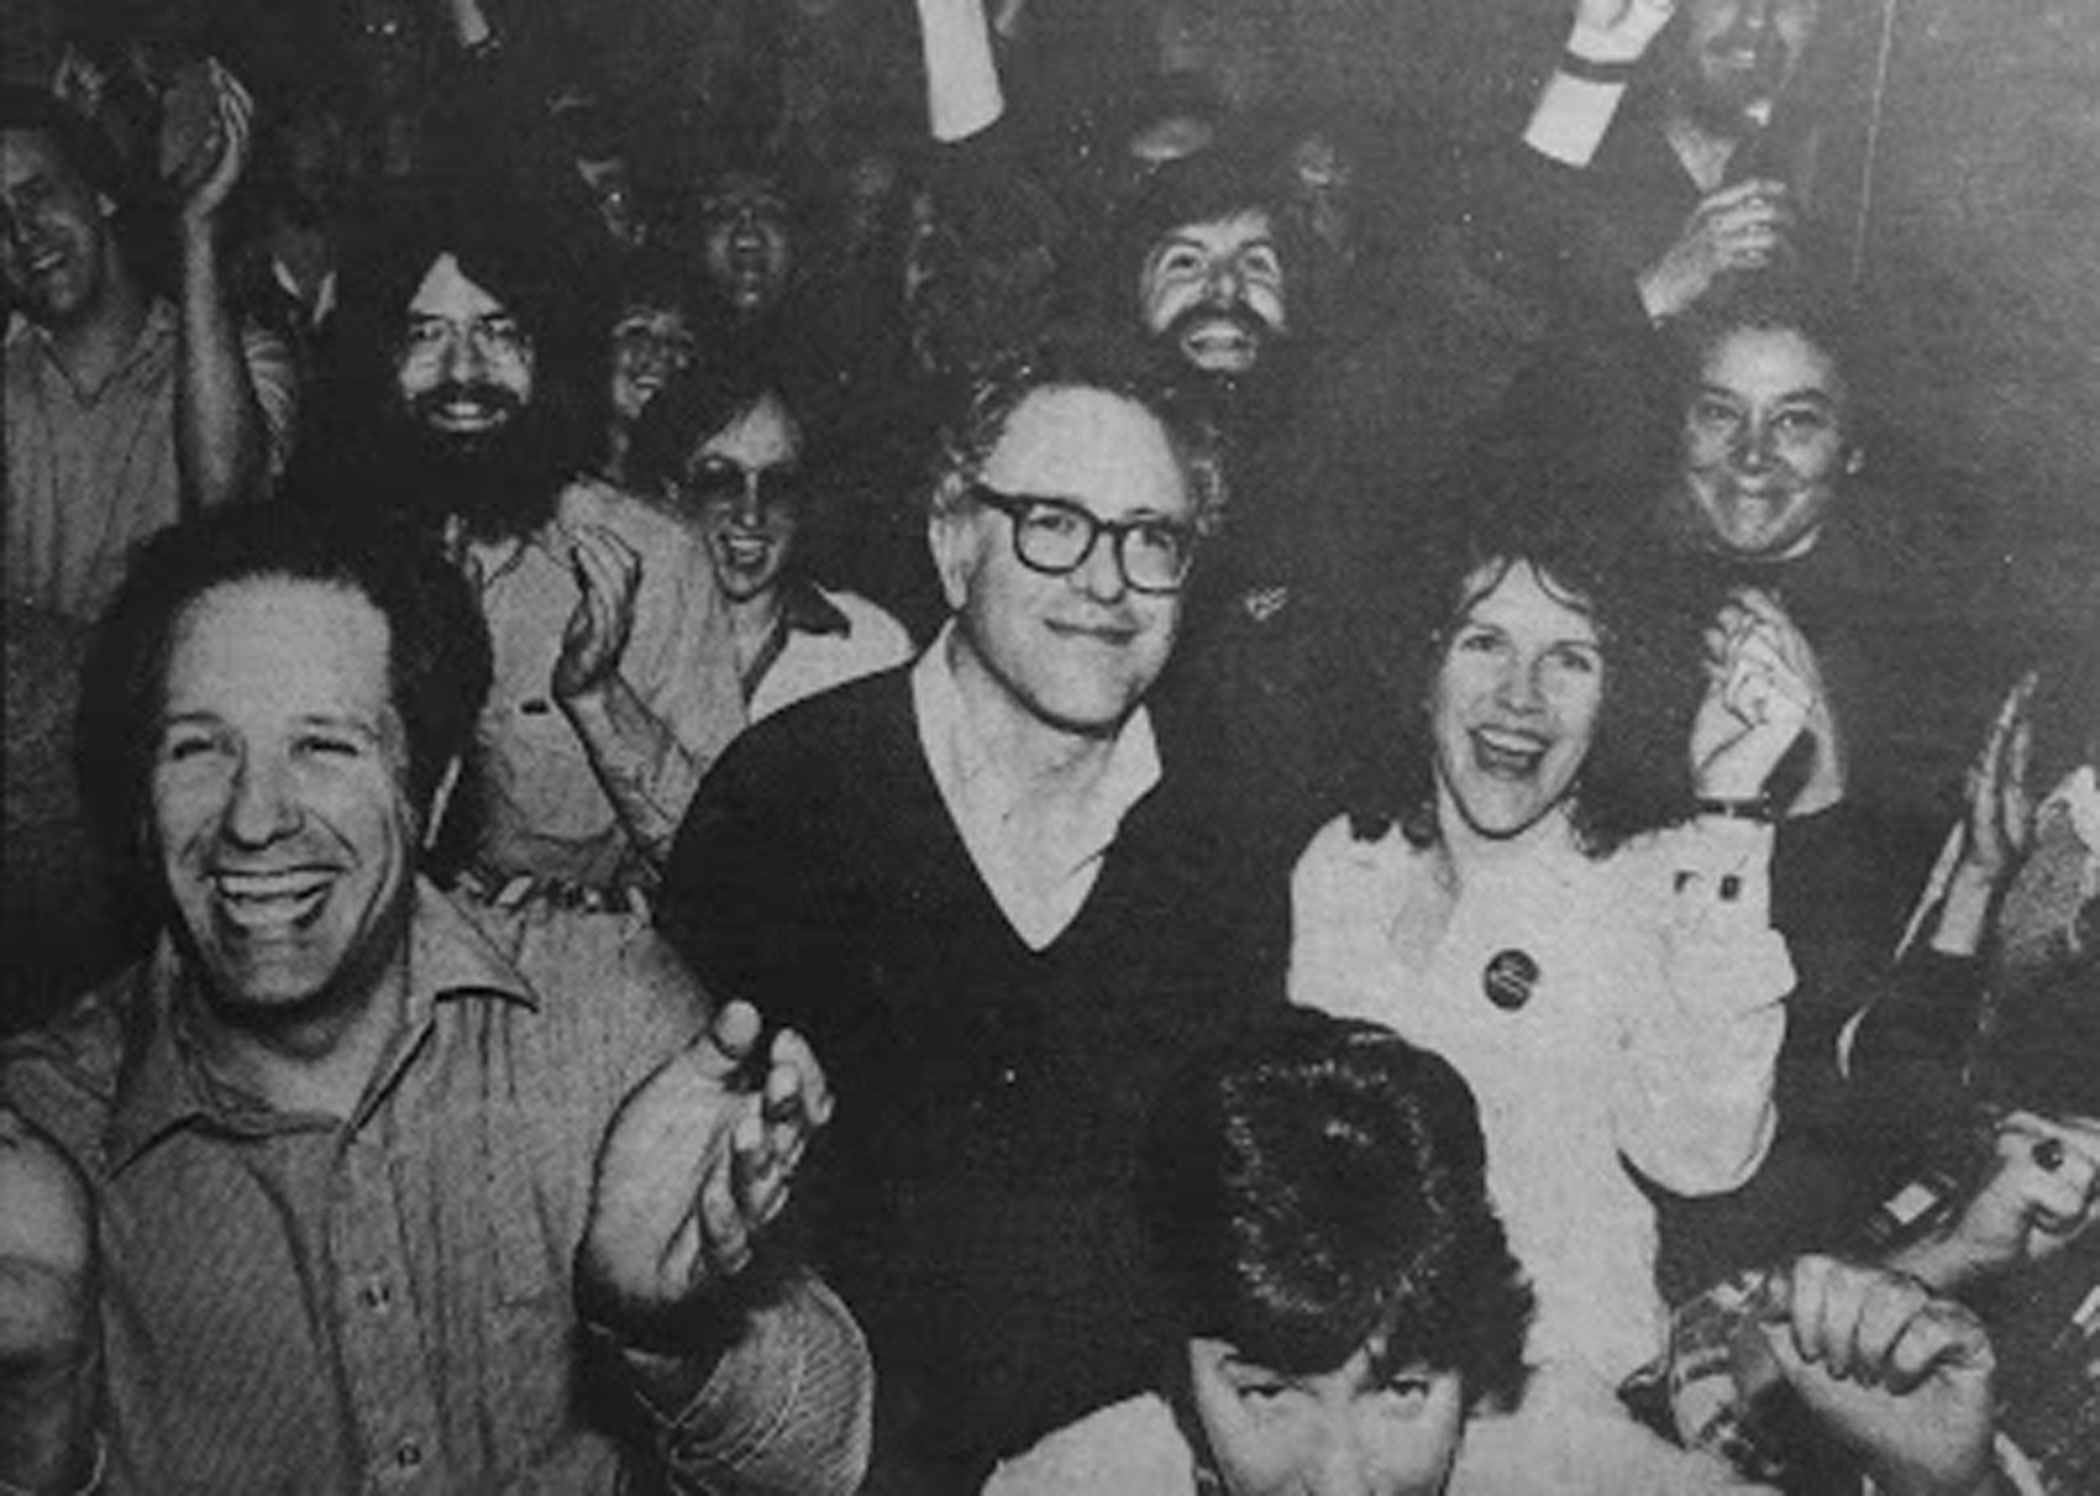 Bernie Sanders and his campaign celebrating after his mayoral re-election circa 1983 in Burlington, Vt.